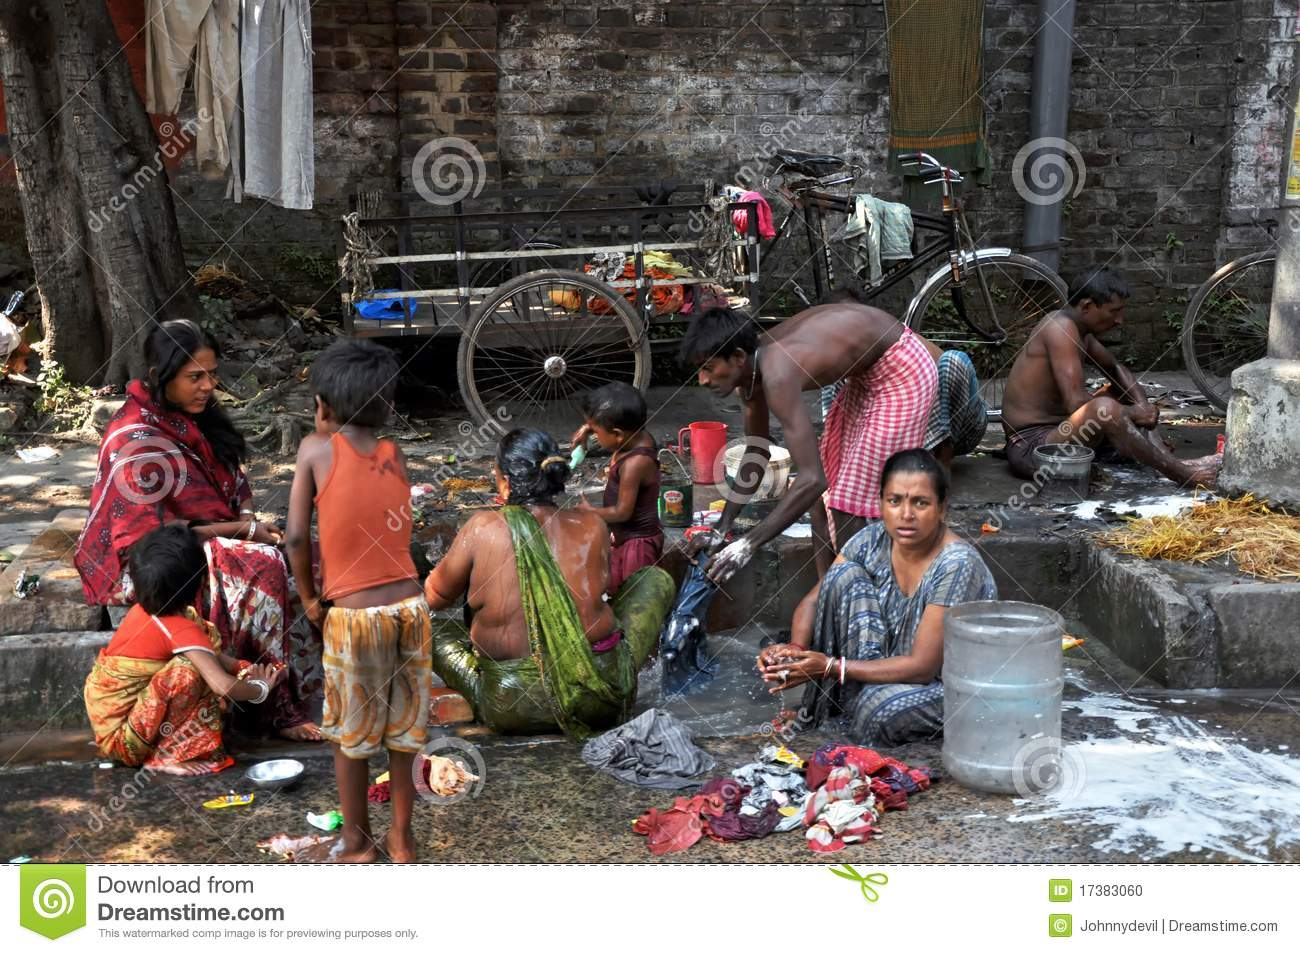 KOLKATA, INDIA - 27 OCTOBER, 2009: An unidentified group of Indian ...